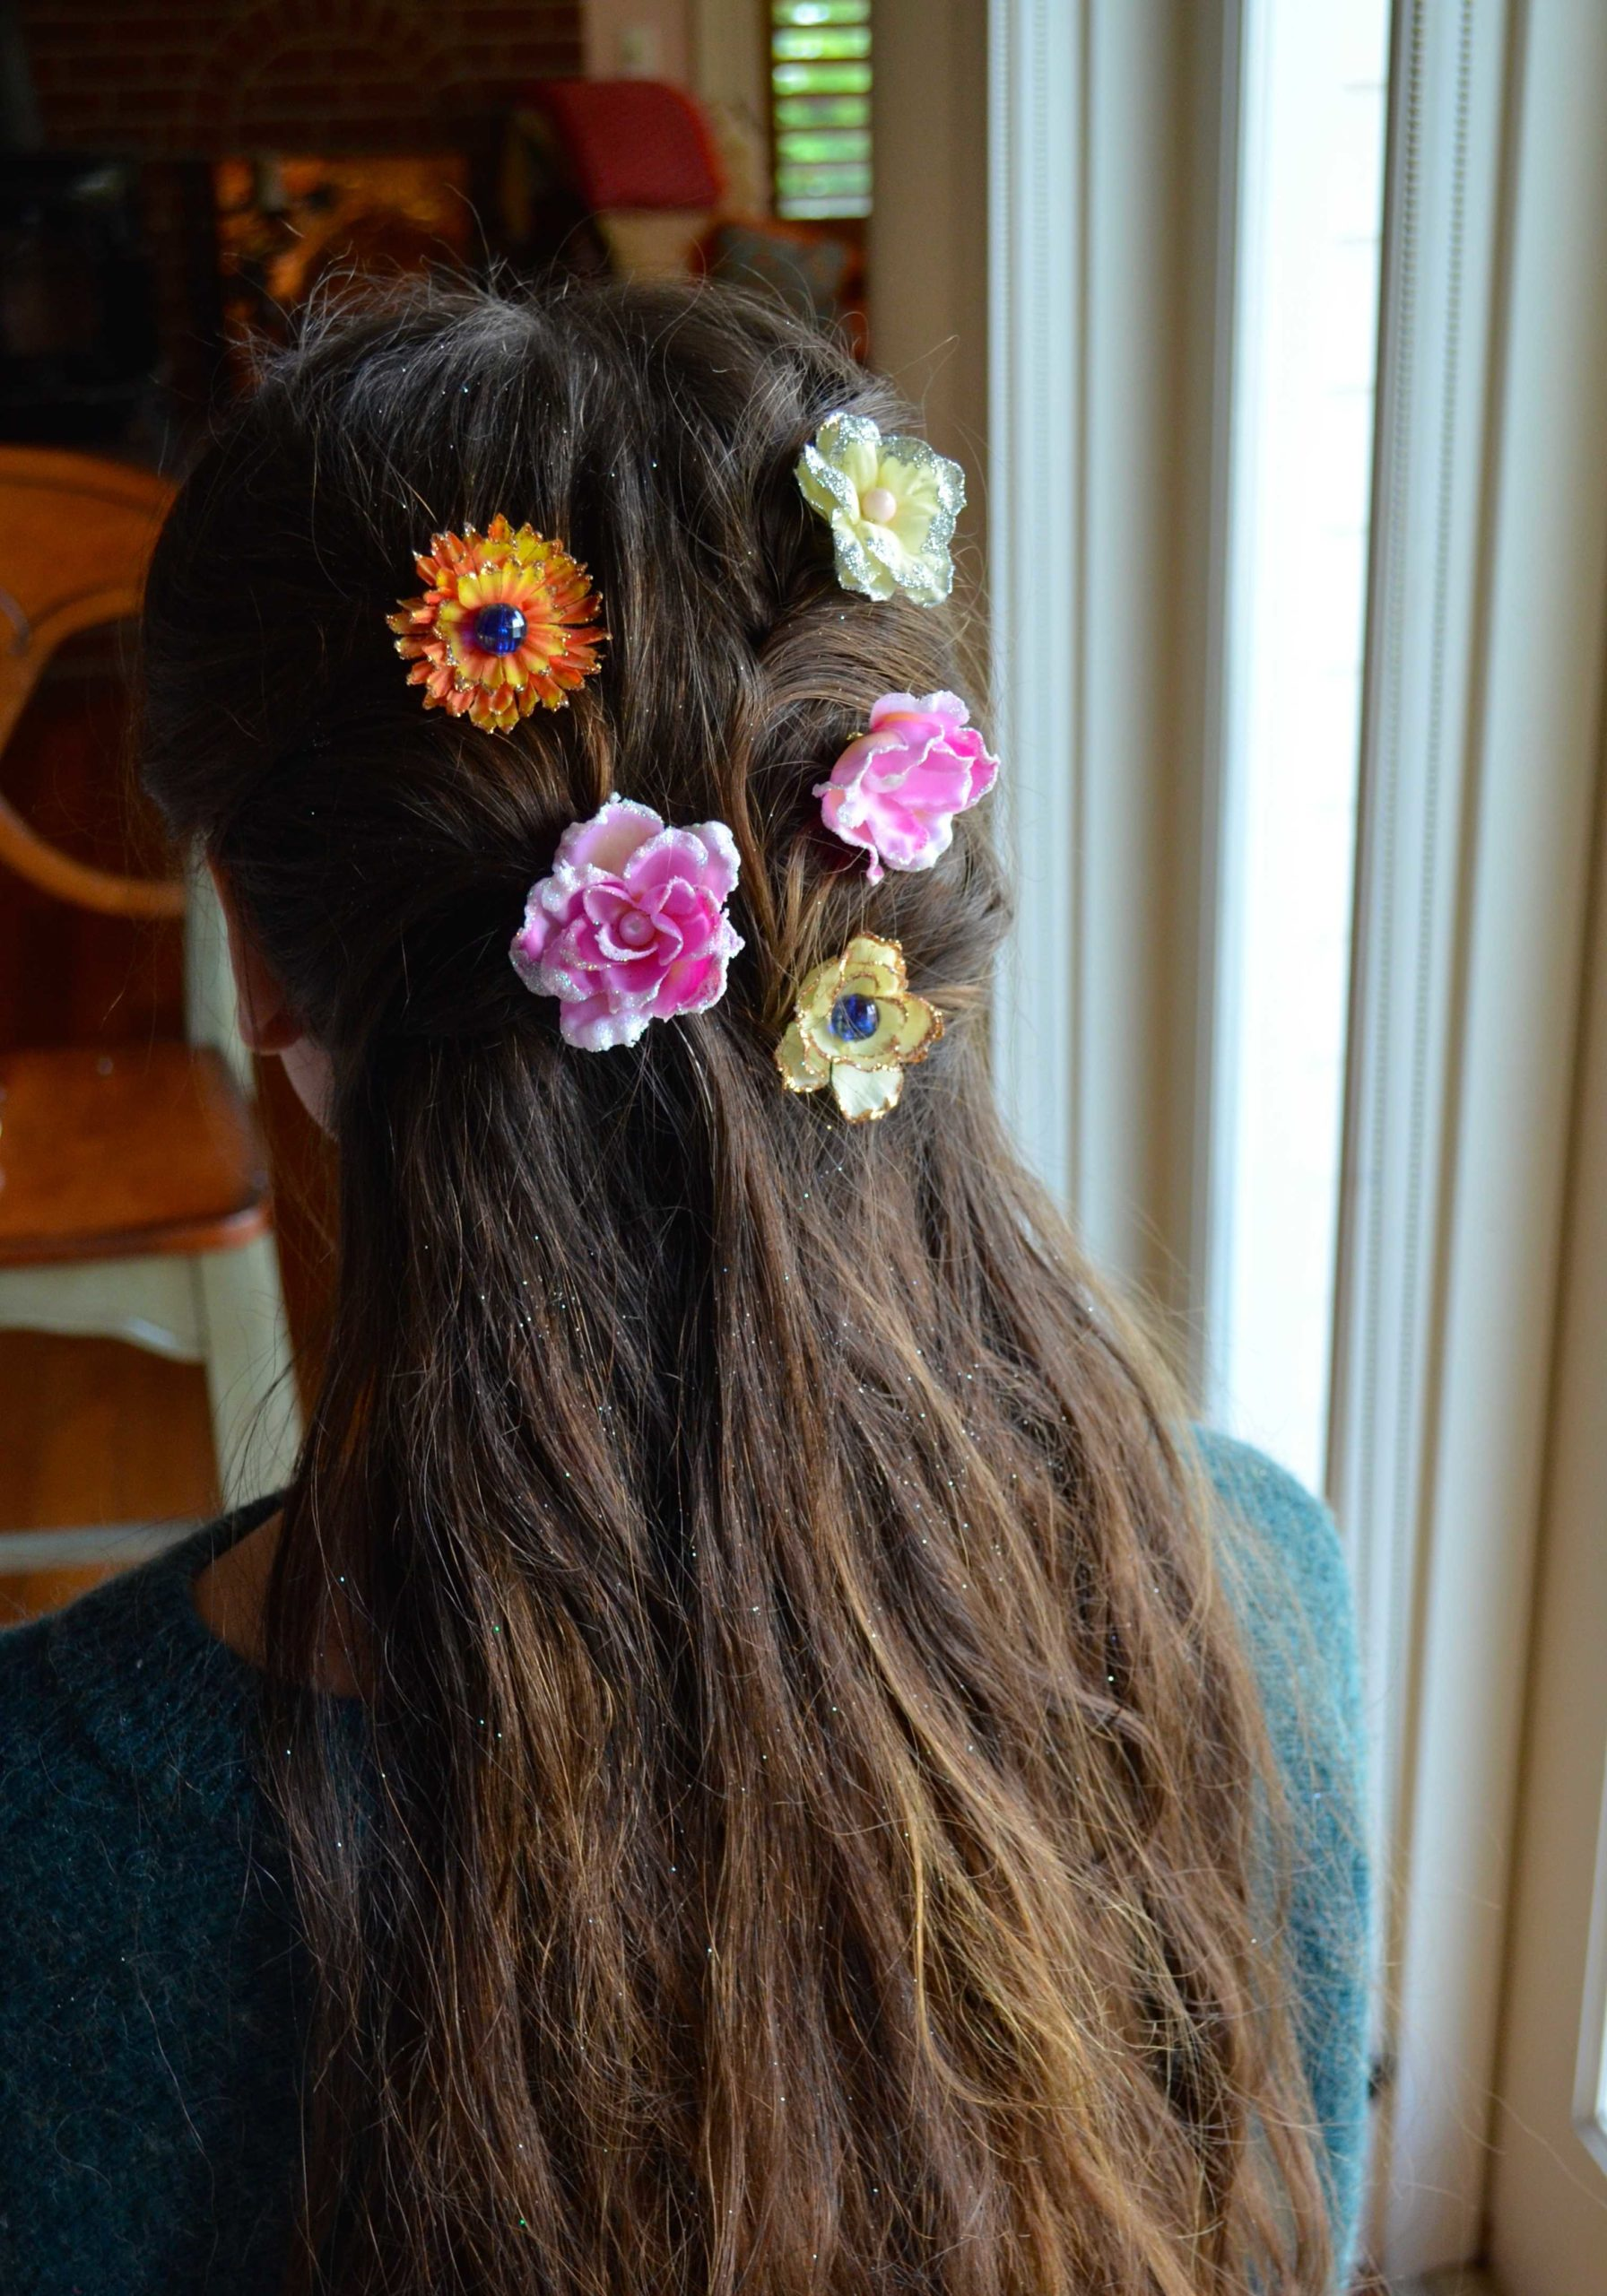 Flower Hair Accessories Fit for a Princess